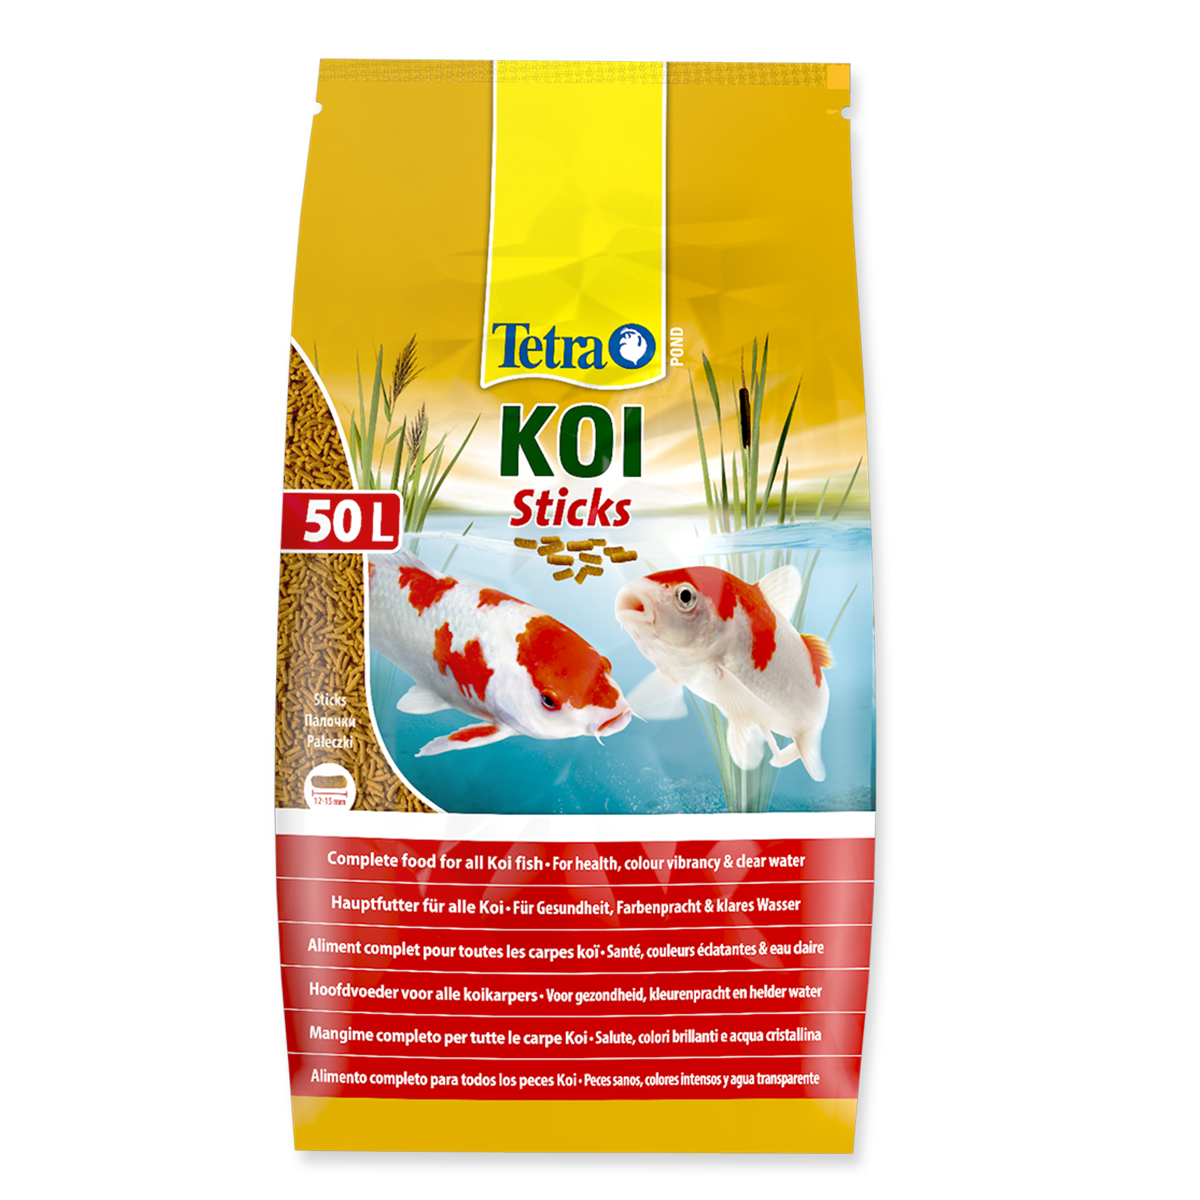 Tetra koi sticks 50 litre for Koi pond sticks